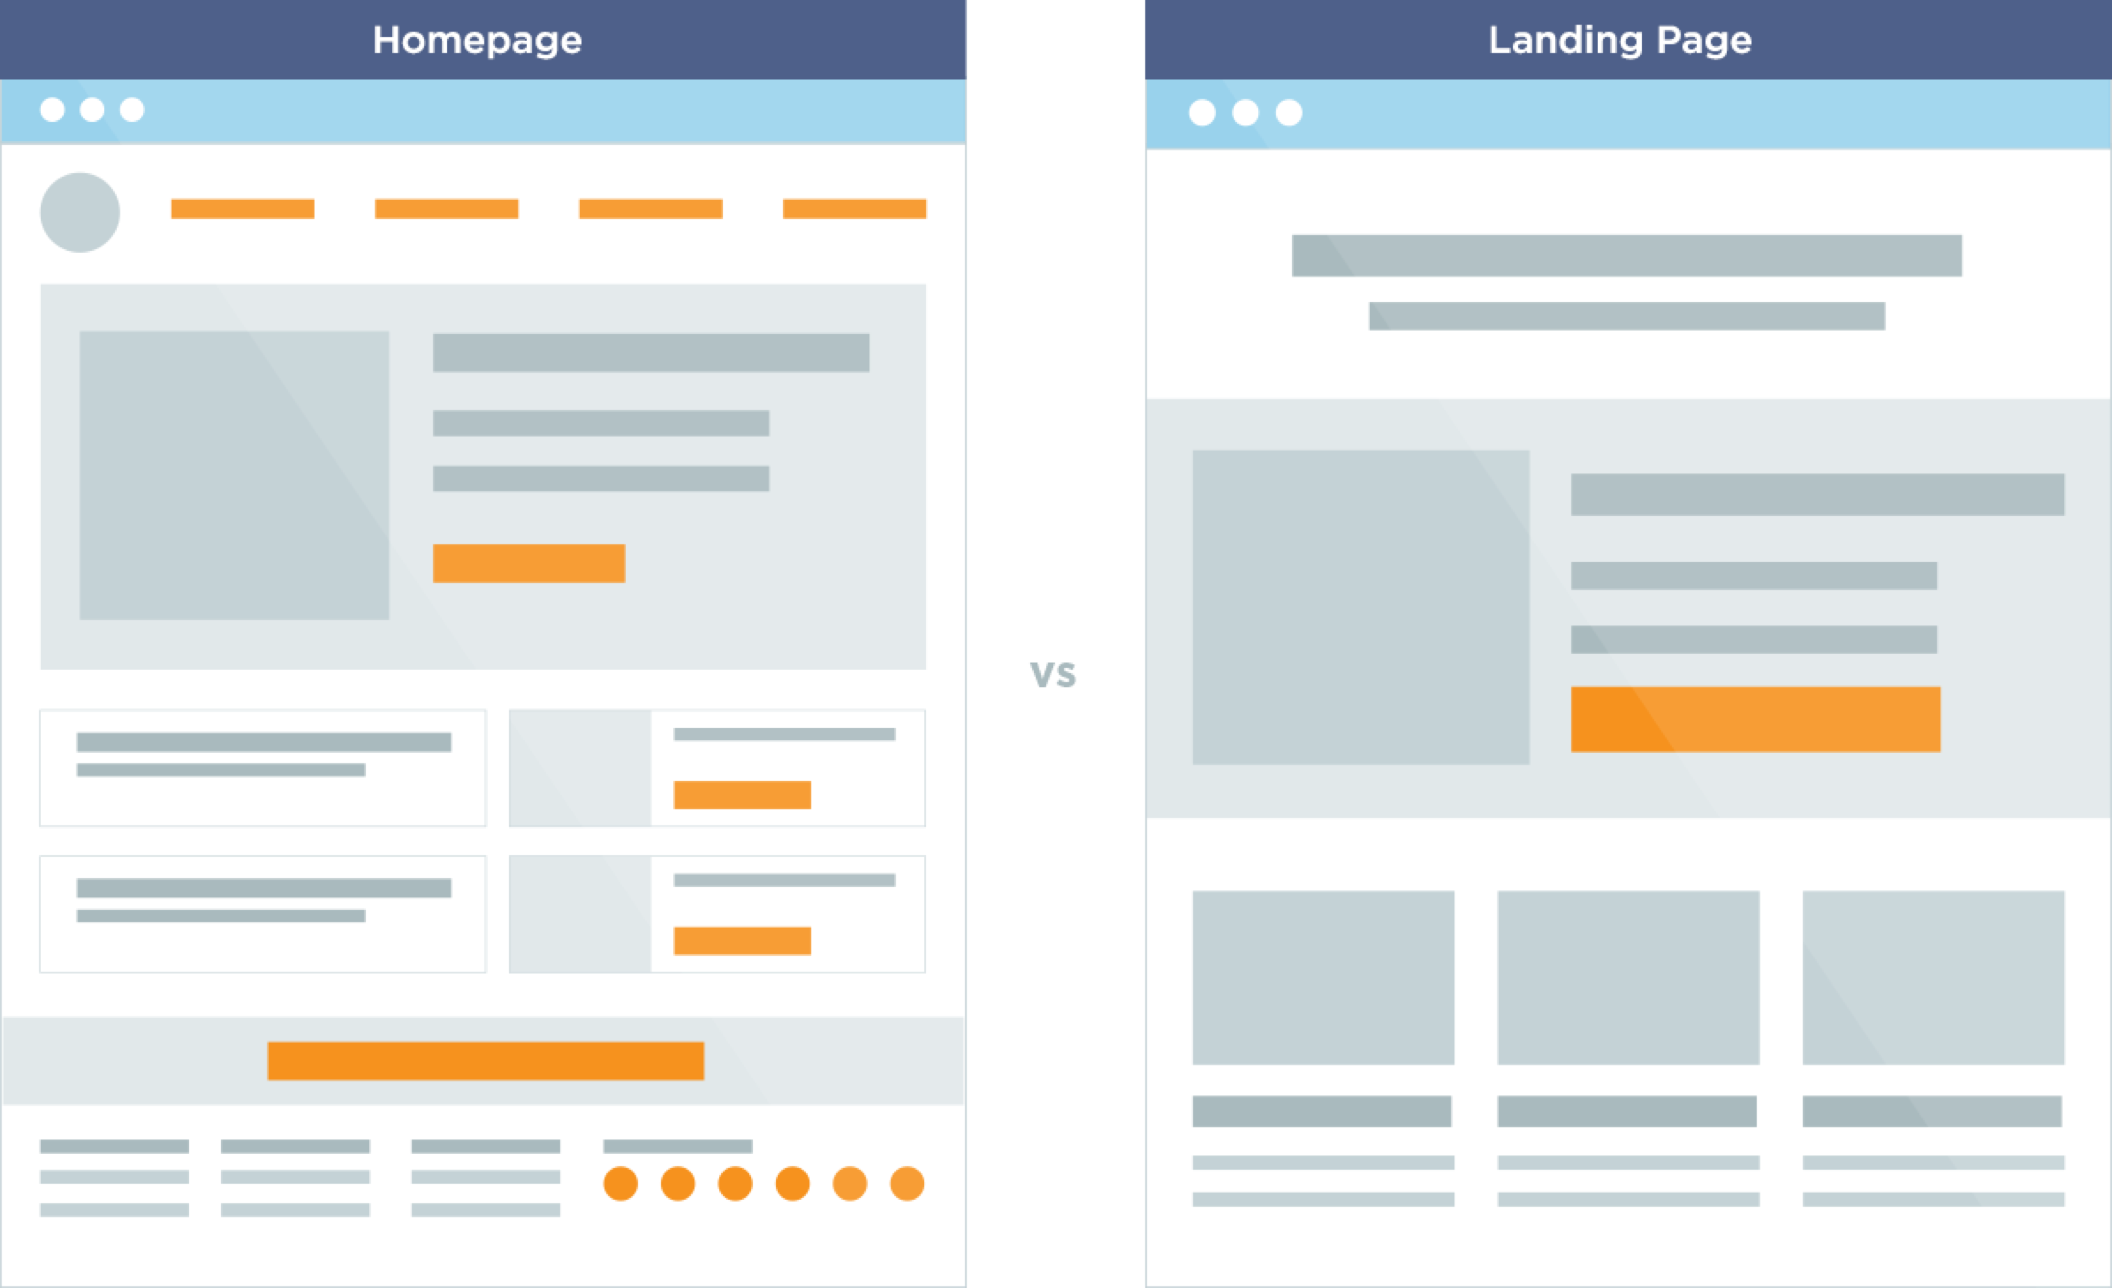 Visual of a homepage layout versus a landing page layout.